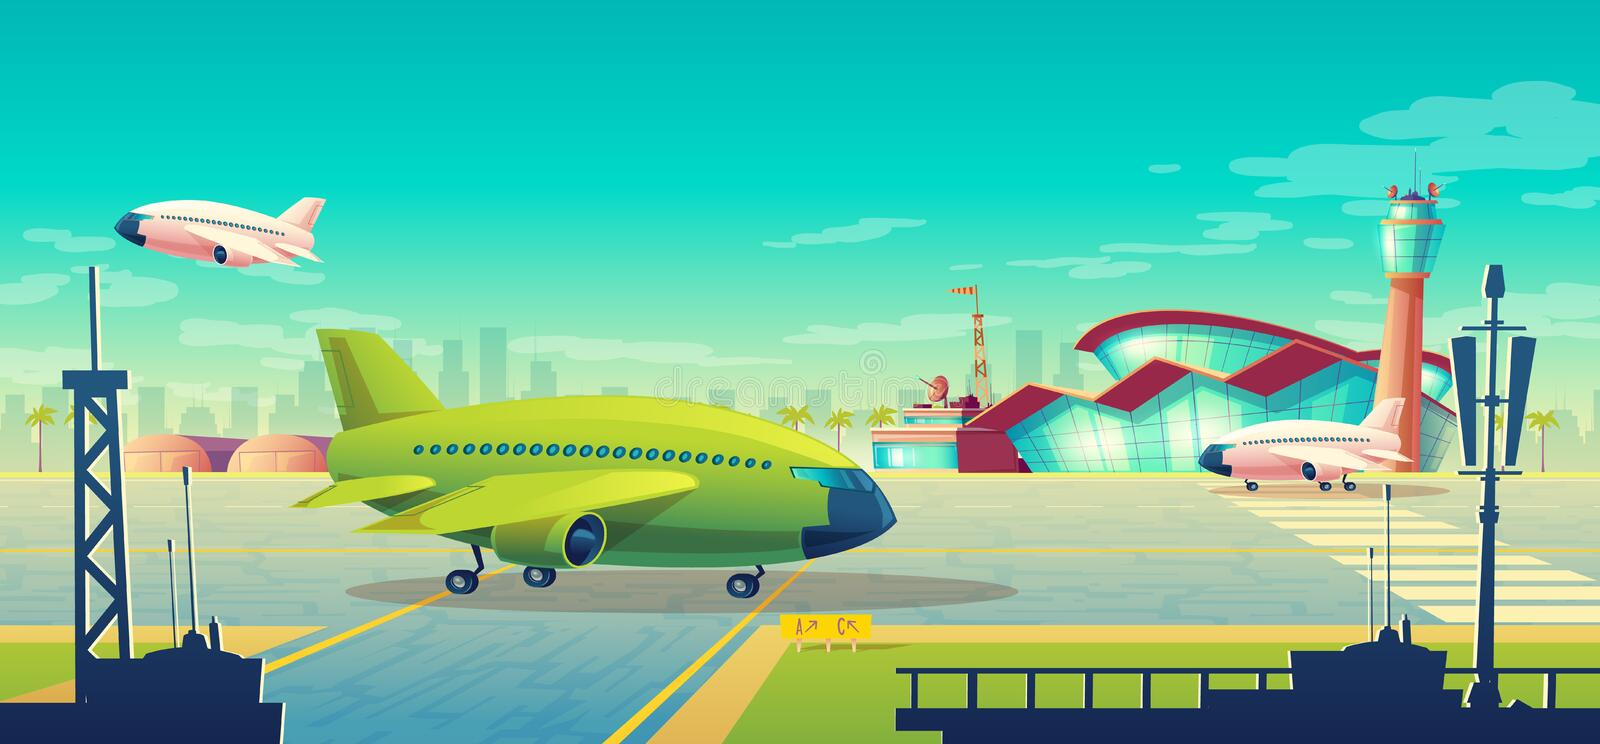 Vector cartoon illustration, green airliner on runway. Vector cartoon illustration, green airliner, jet on runway. Takeoff or landing of commercial airplanes royalty free illustration